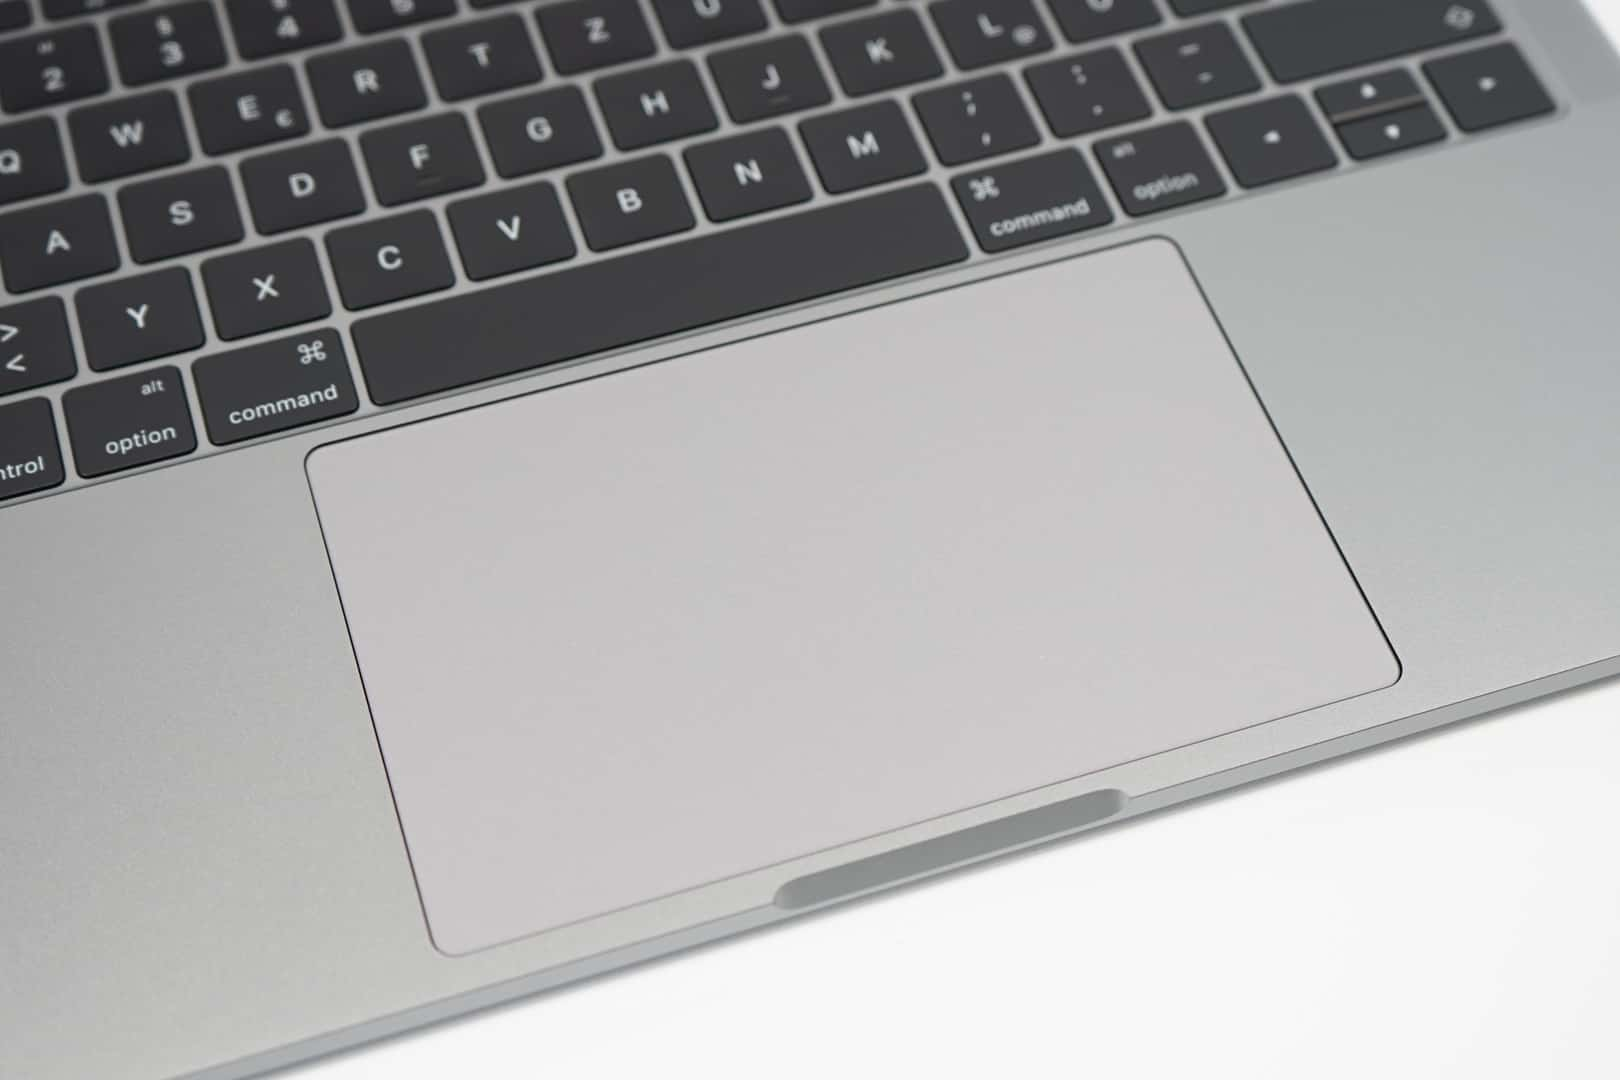 macbook mpxt2